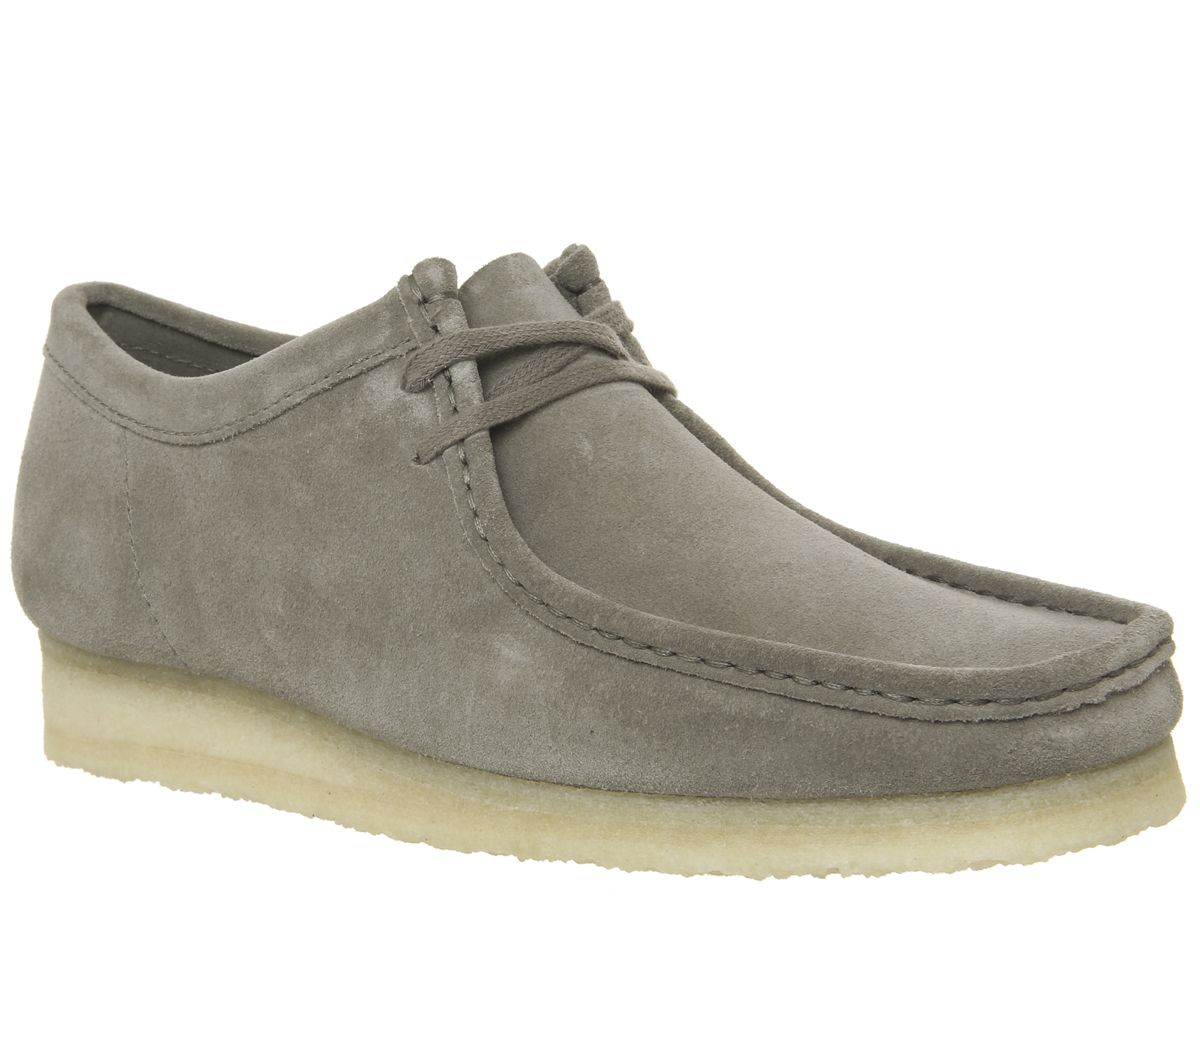 913a05352d1aa5 Clarks Originals Wallabee Shoes Grey Suede - Casual